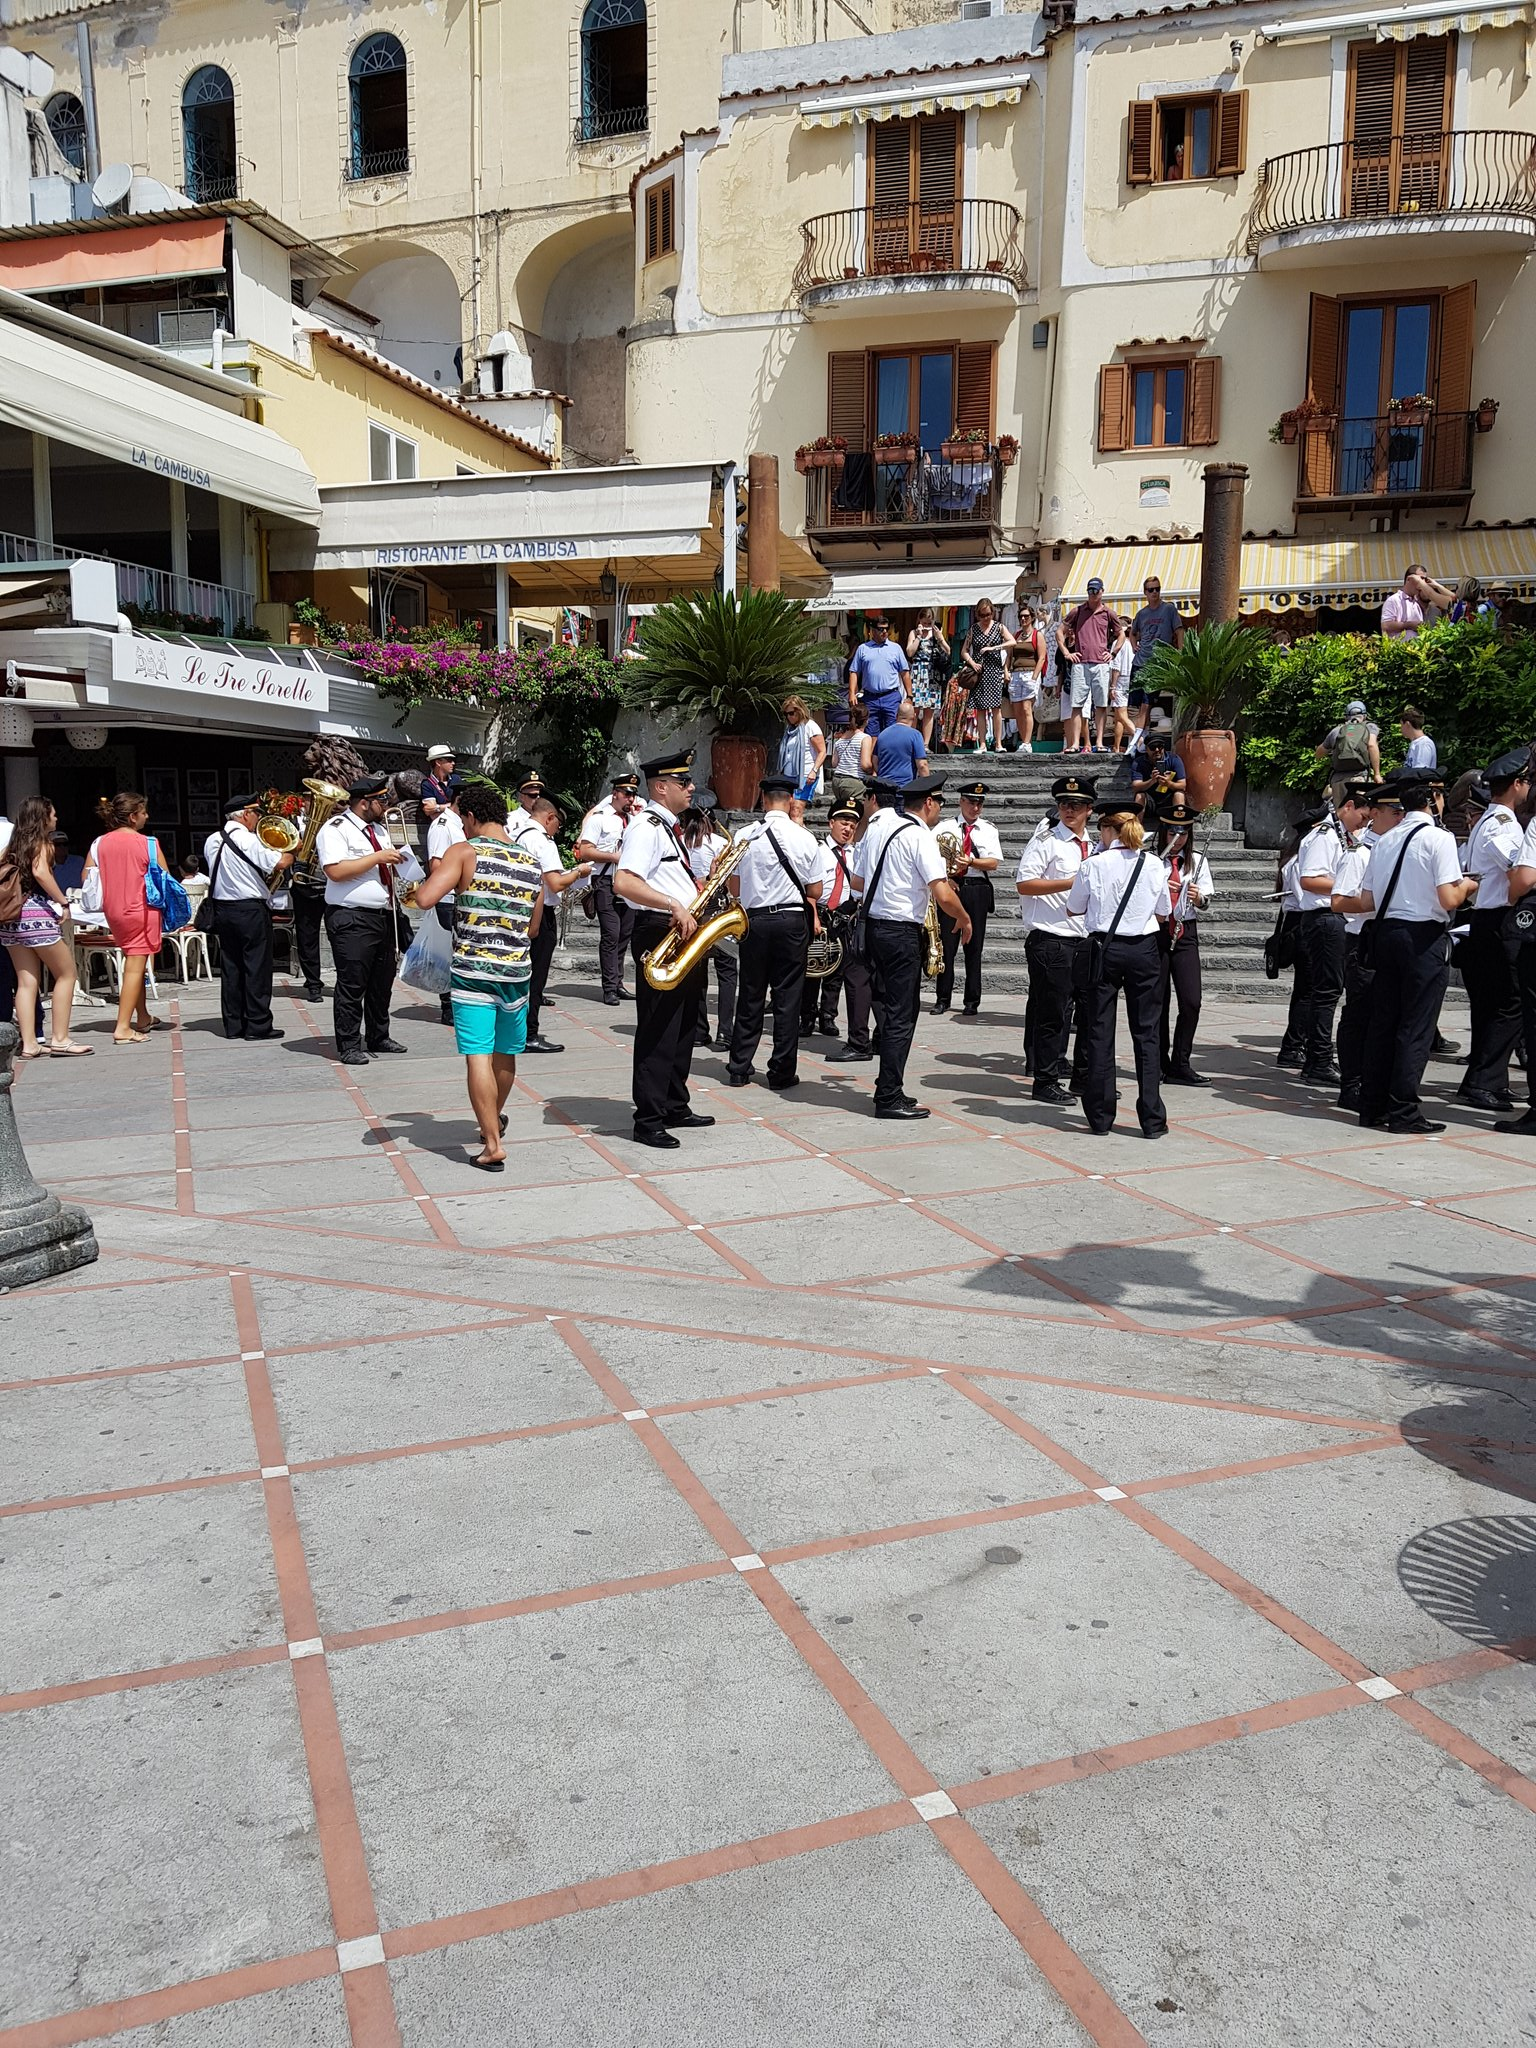 The local brass band in Positano https://t.co/22aTAHahQx